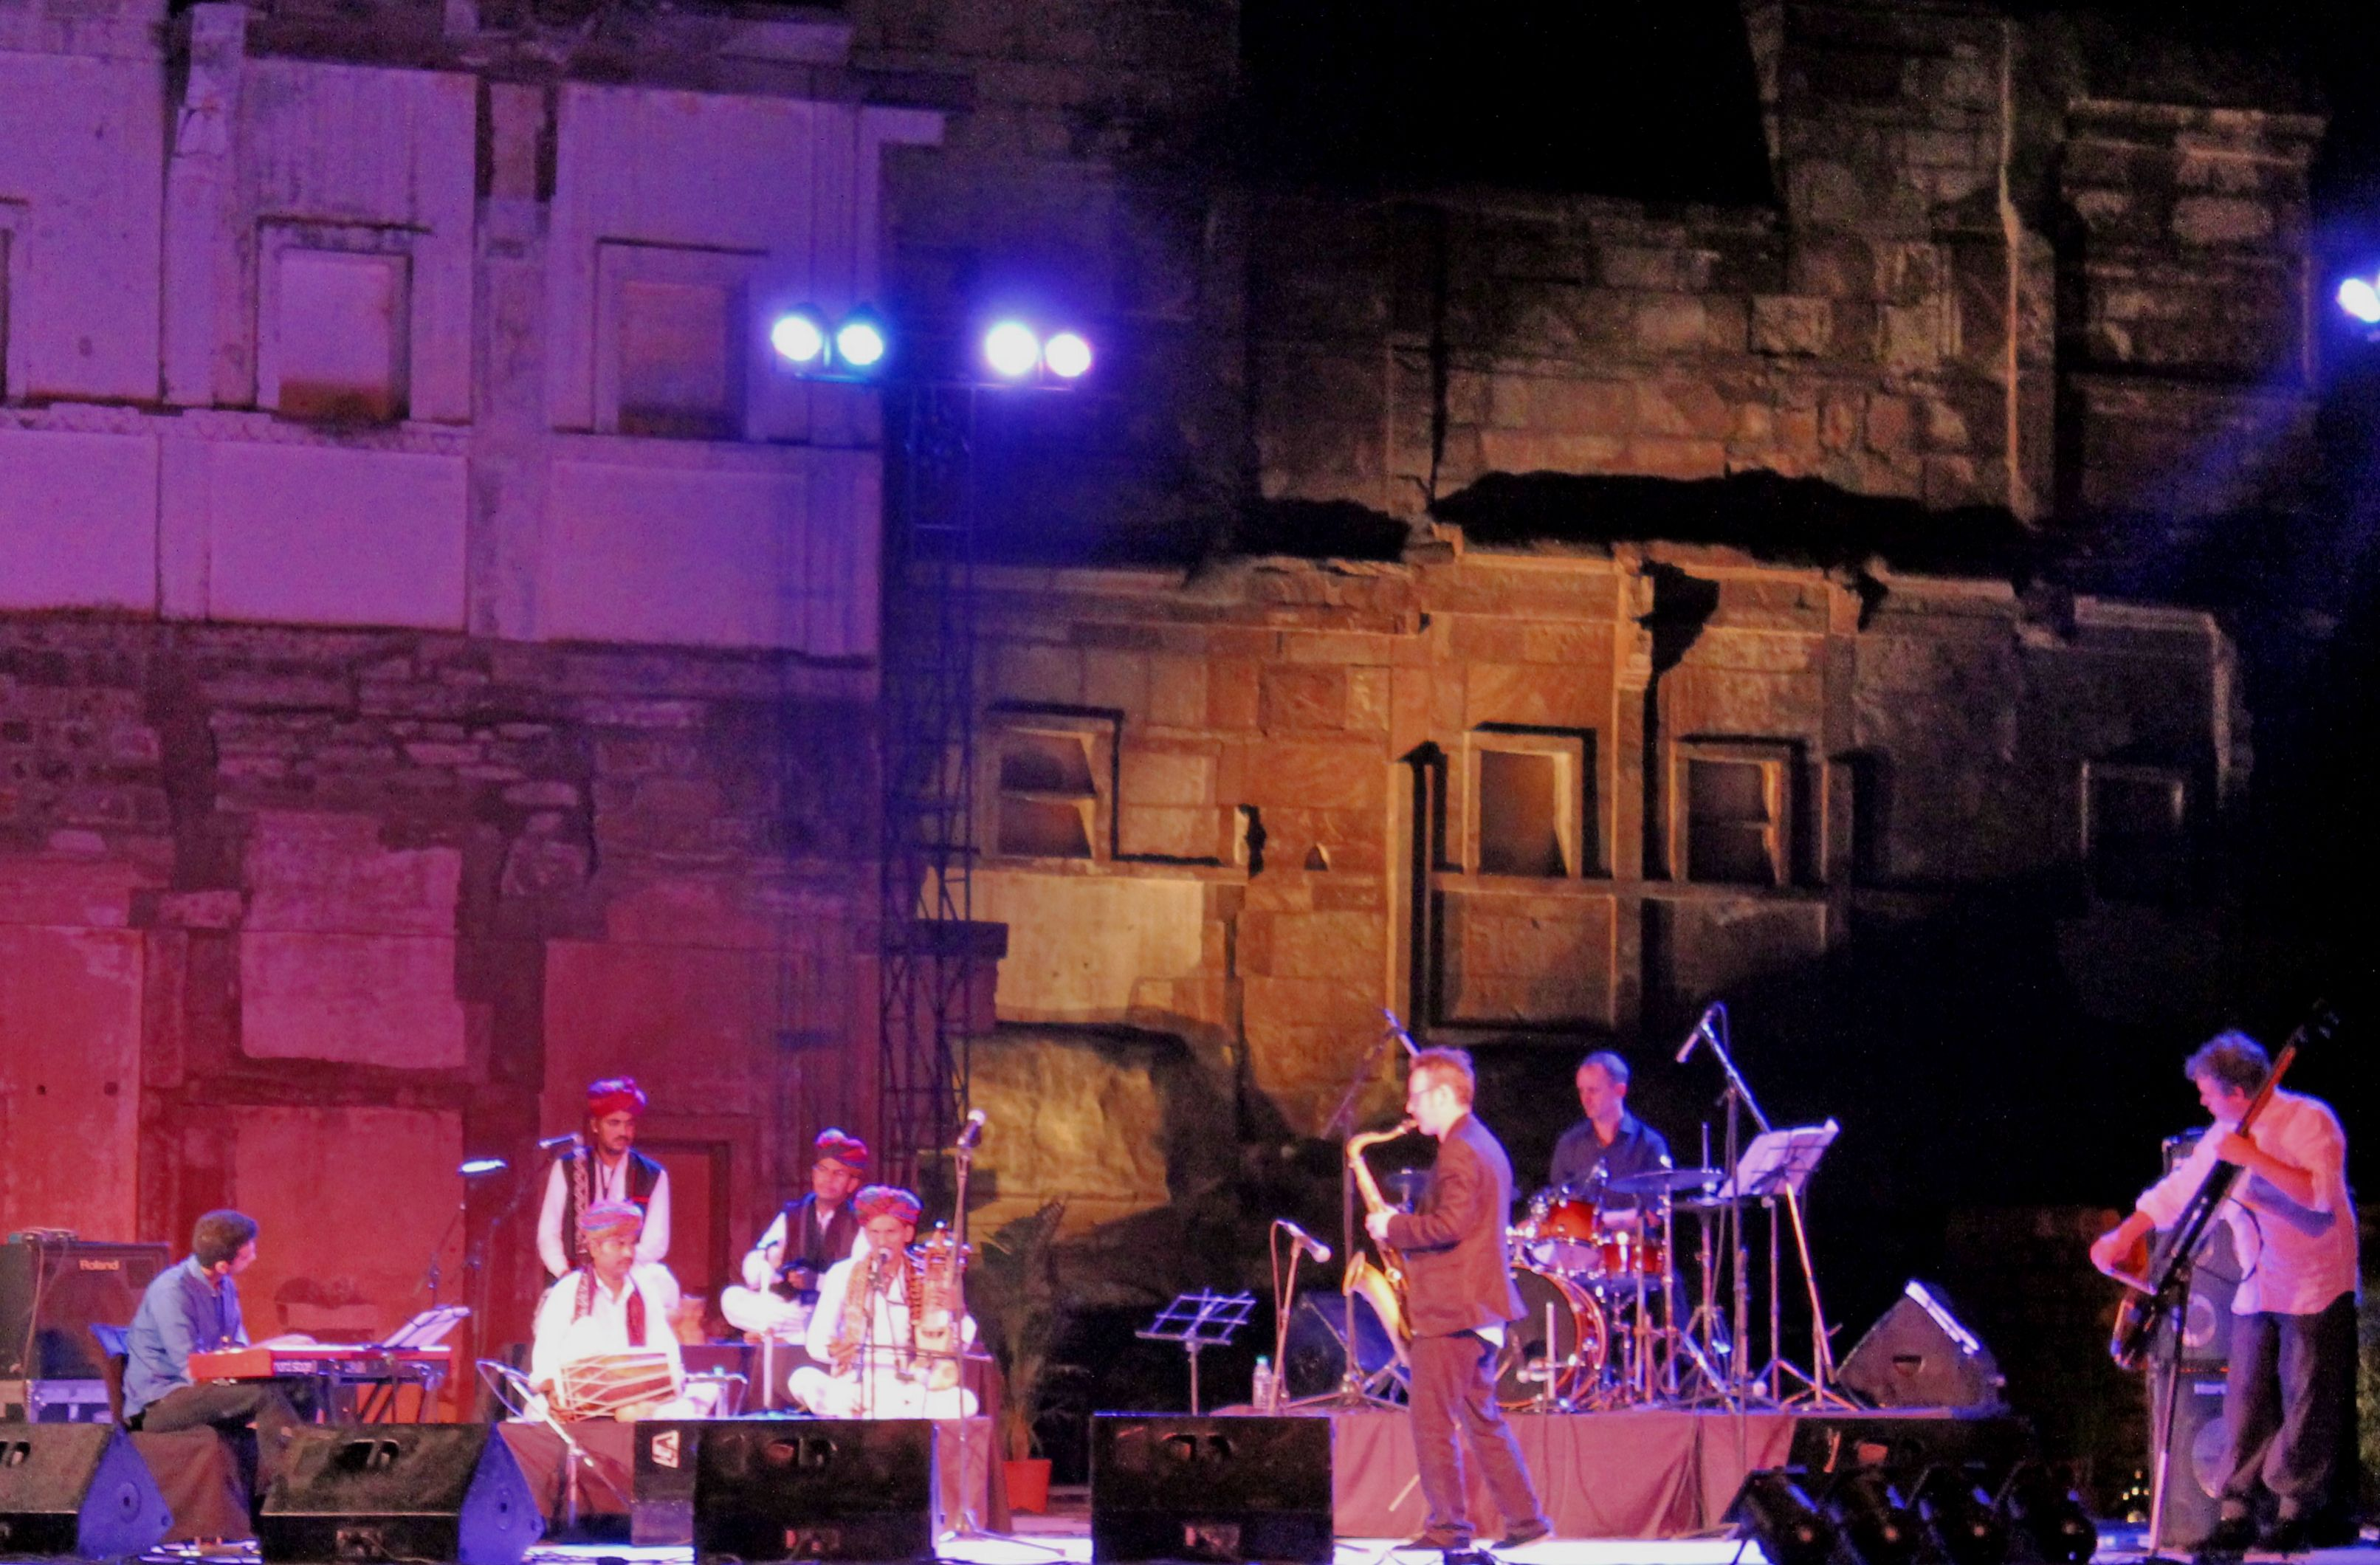 It's a little surreal to hear a haunting Celtic song in the zenana courtyard of a 17th century fort in Rajasthan. It's Sharad Poornima, the brightest full moon of the year, and everything looks lik...